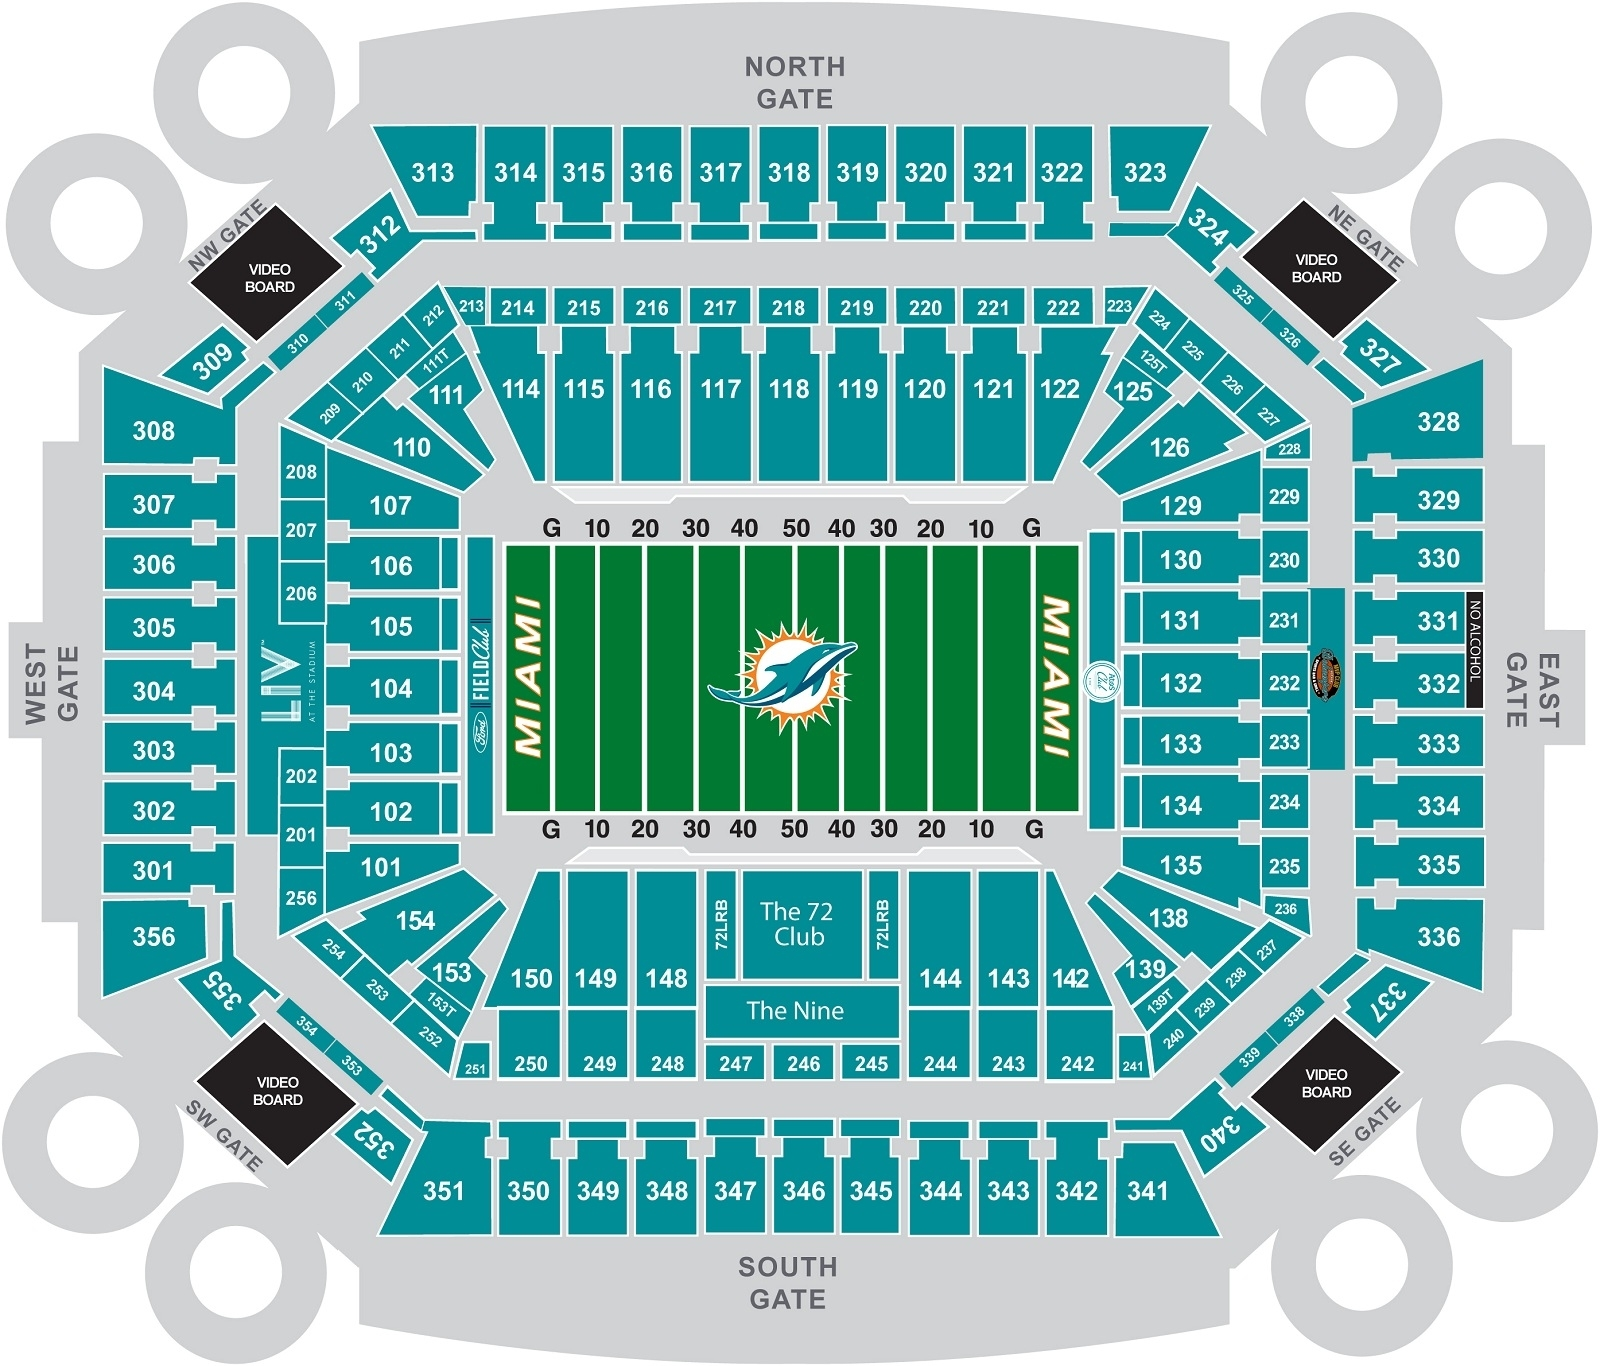 2020 Super Bowl Seating Chart | February 2, 2020 | Fan within Super Bowl 53 Seating Chart